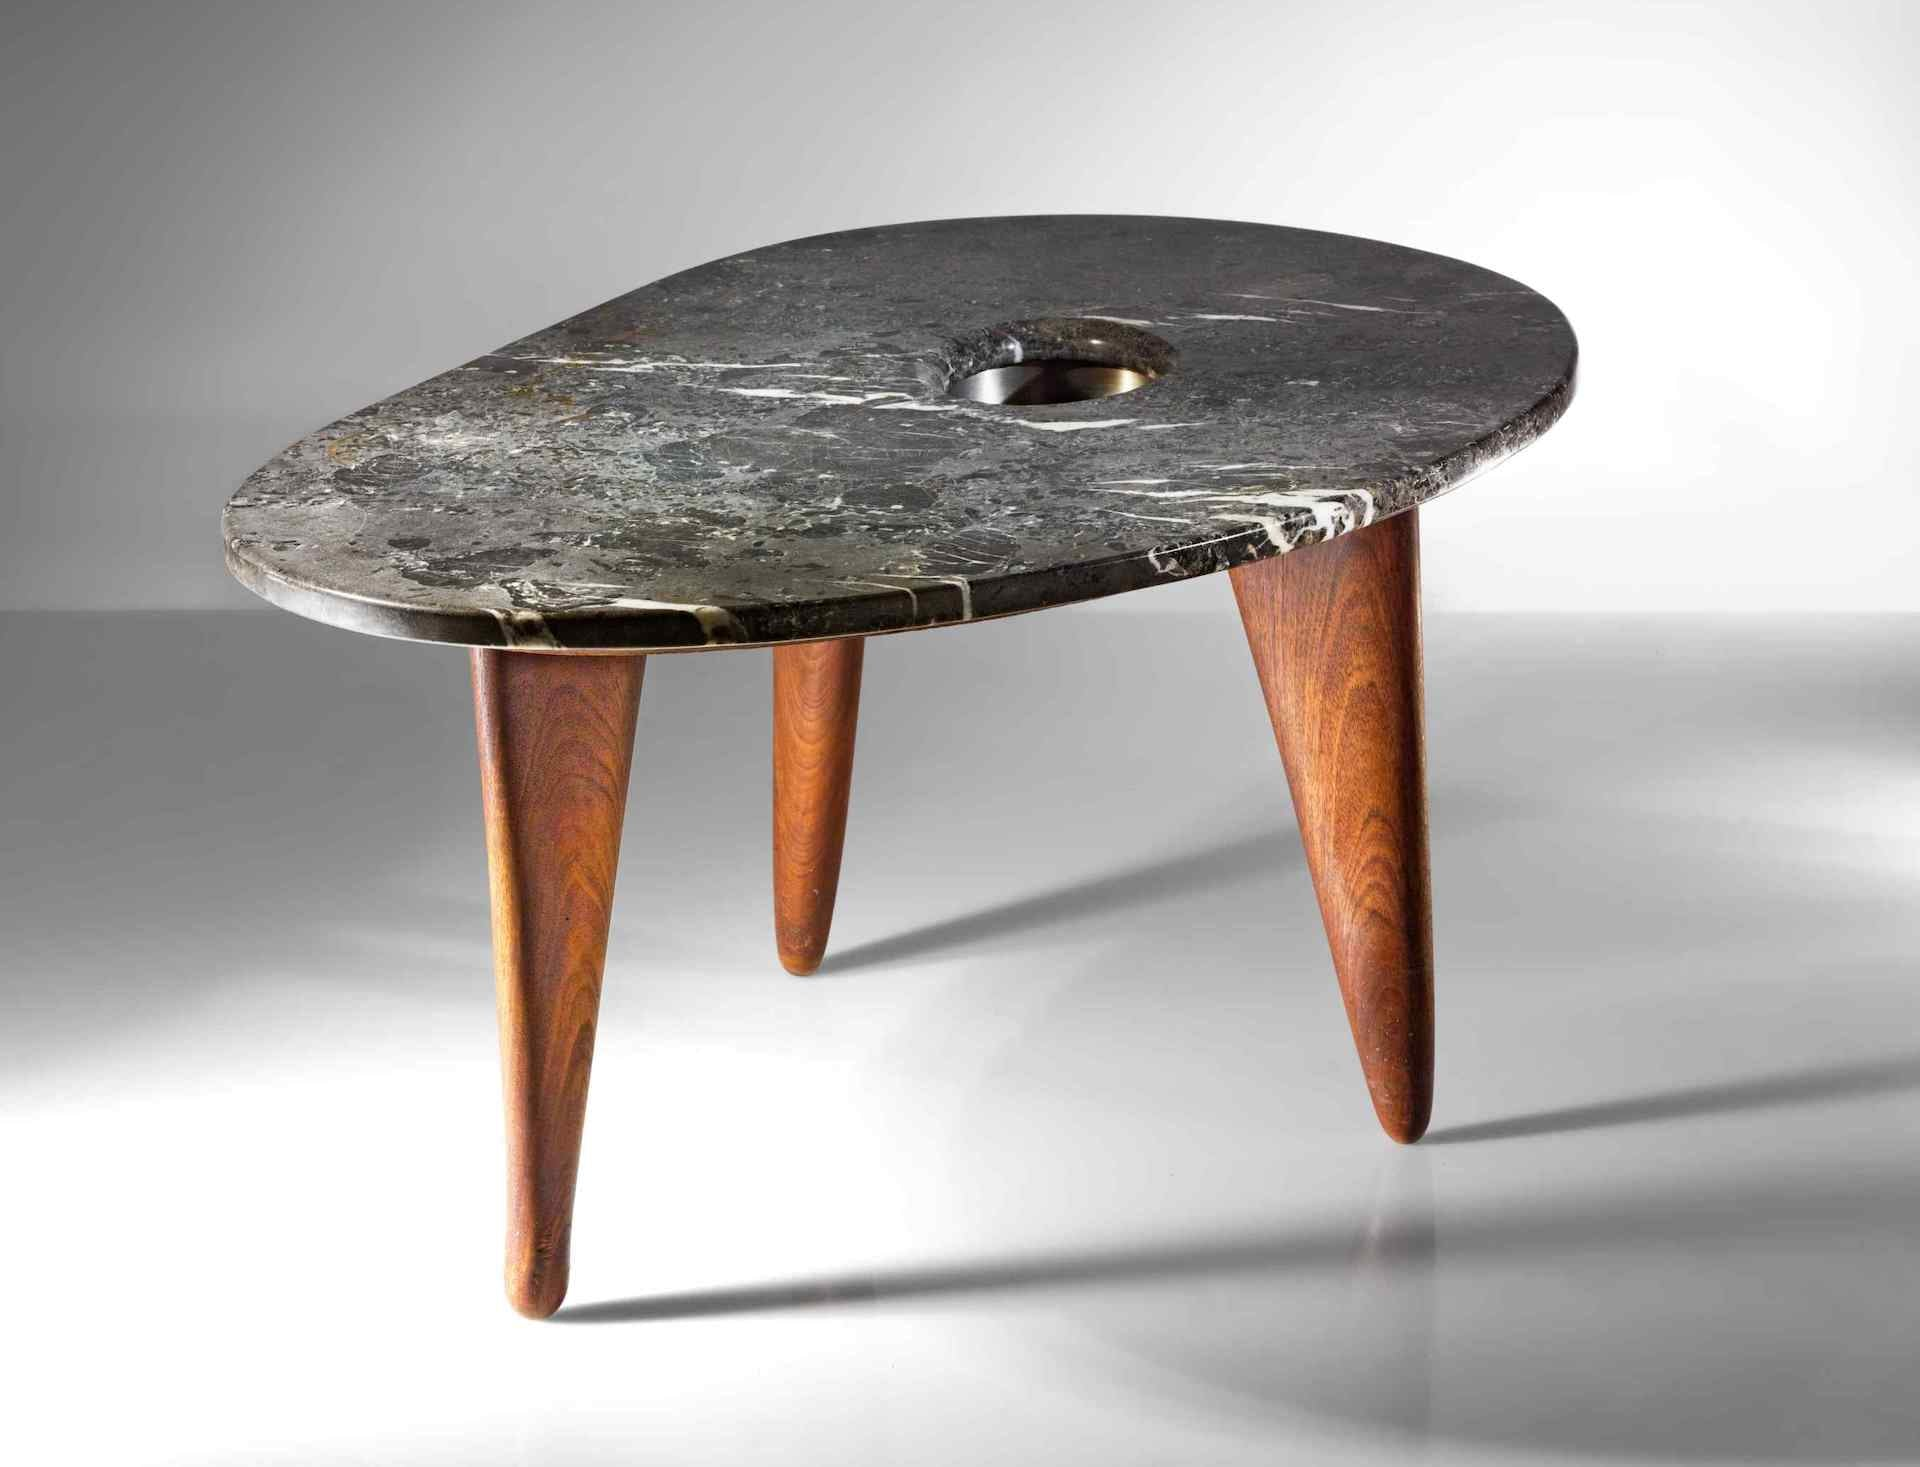 Sotheby's New York 25 May 2021 -Important Design: from Noguchi to Lalanne [lot 70]: Important Table by Isamu Noguchi, 1945-1947. Estimate: $700,000 - $900,000. Sold: $1,109,000. Photo © Sotheby's